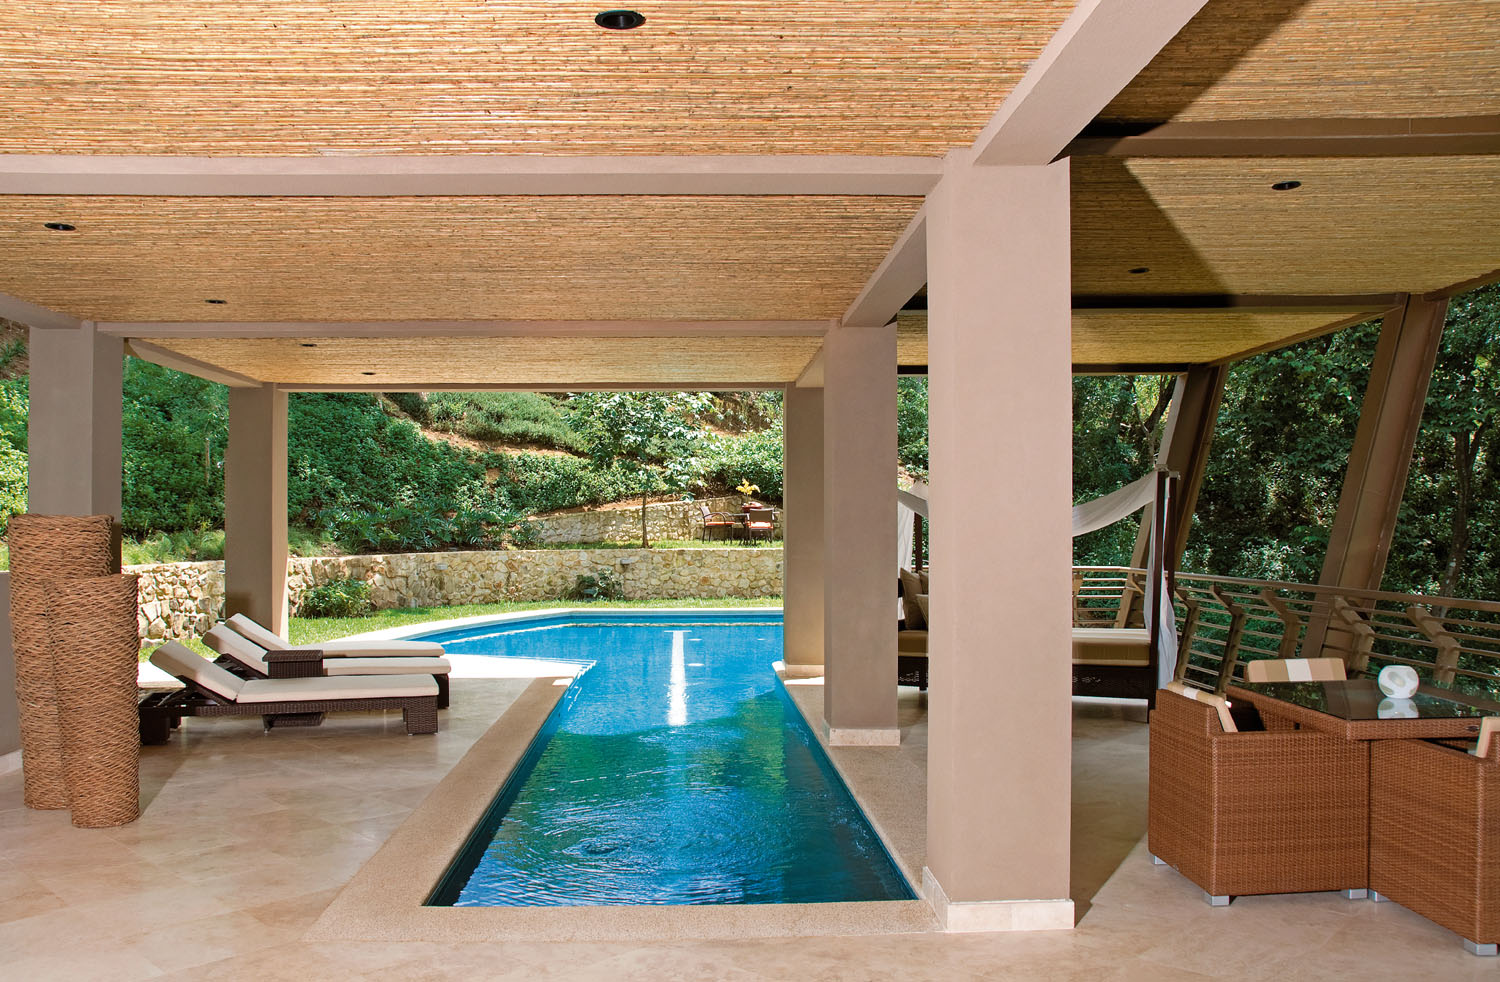 Hybrid Covered/Uncovered Swimming Pool